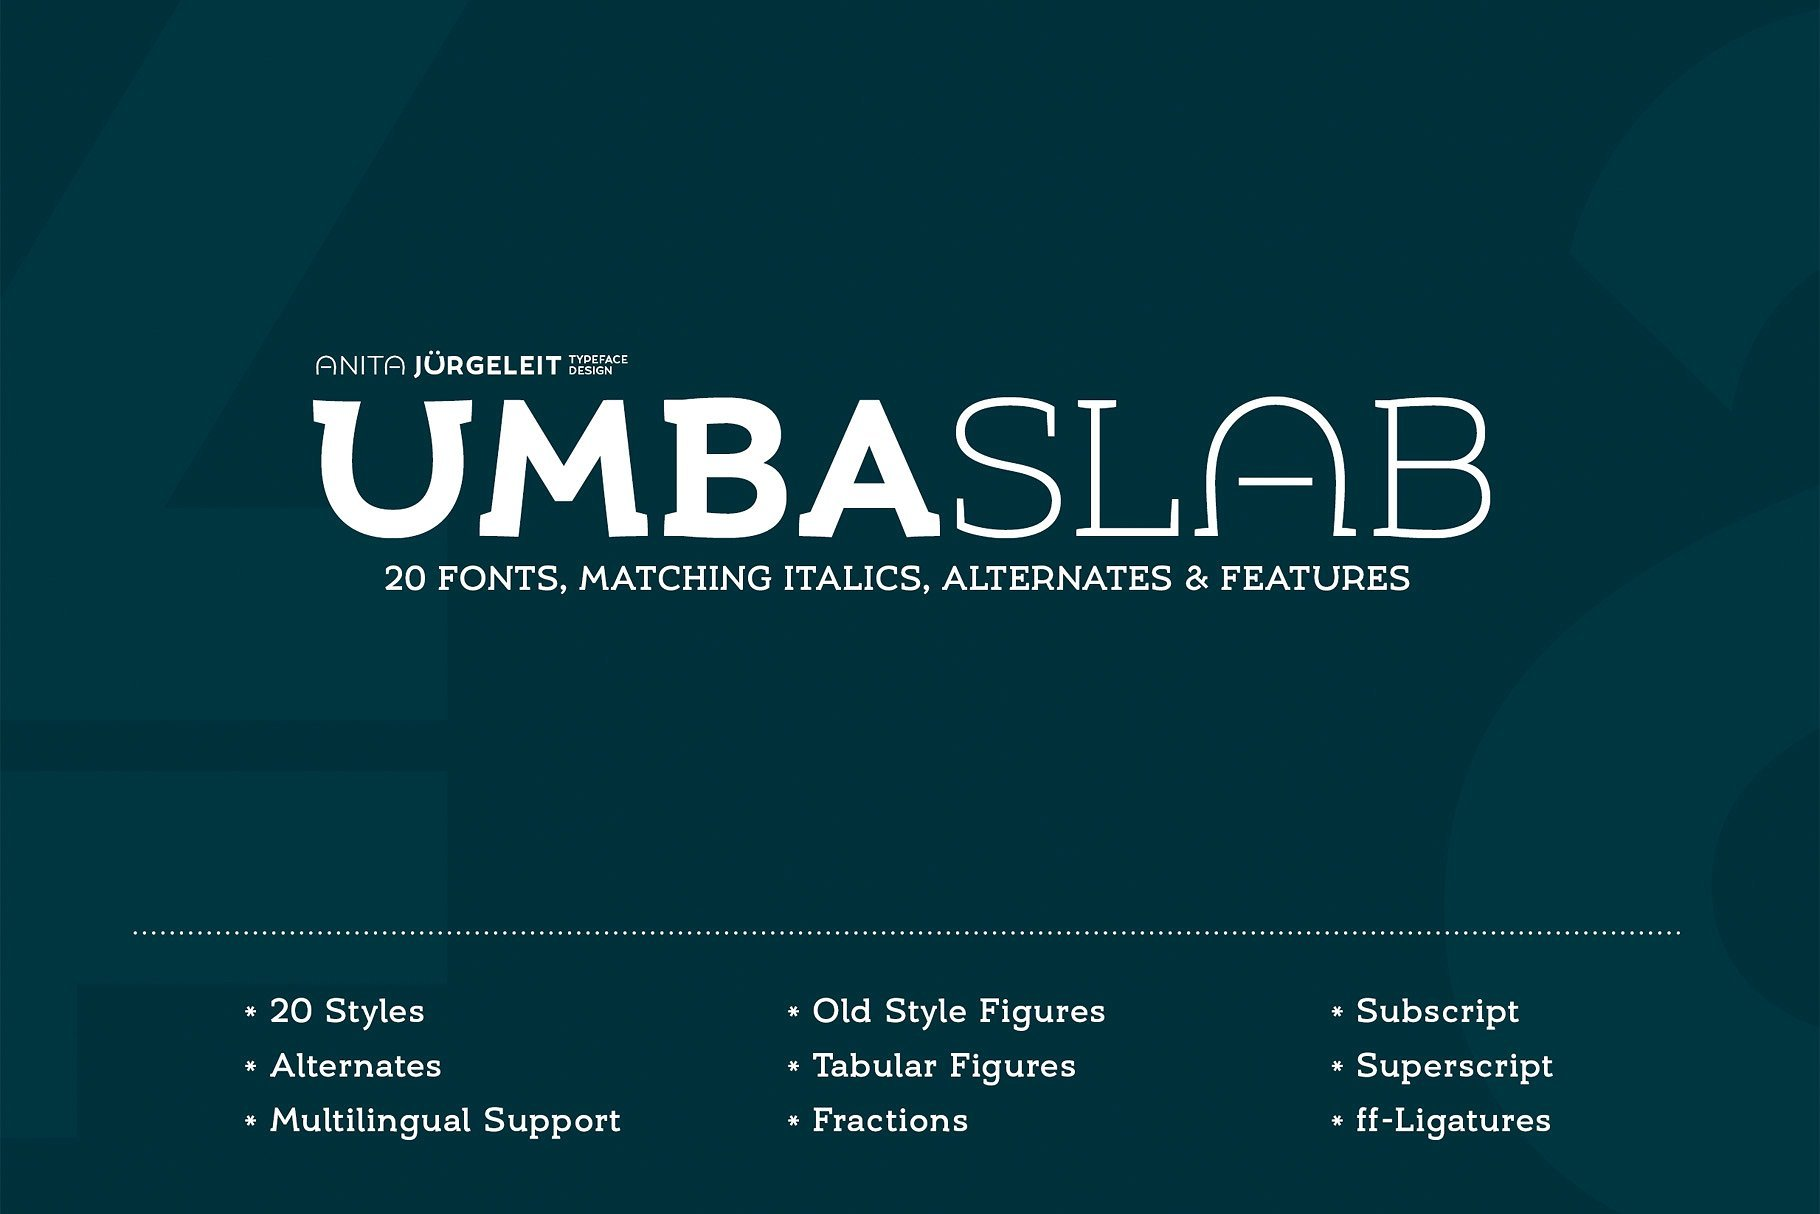 https://fontclarity.com/wp-content/uploads/2019/09/umba-slab-font-family-download-0.jpg Free Download